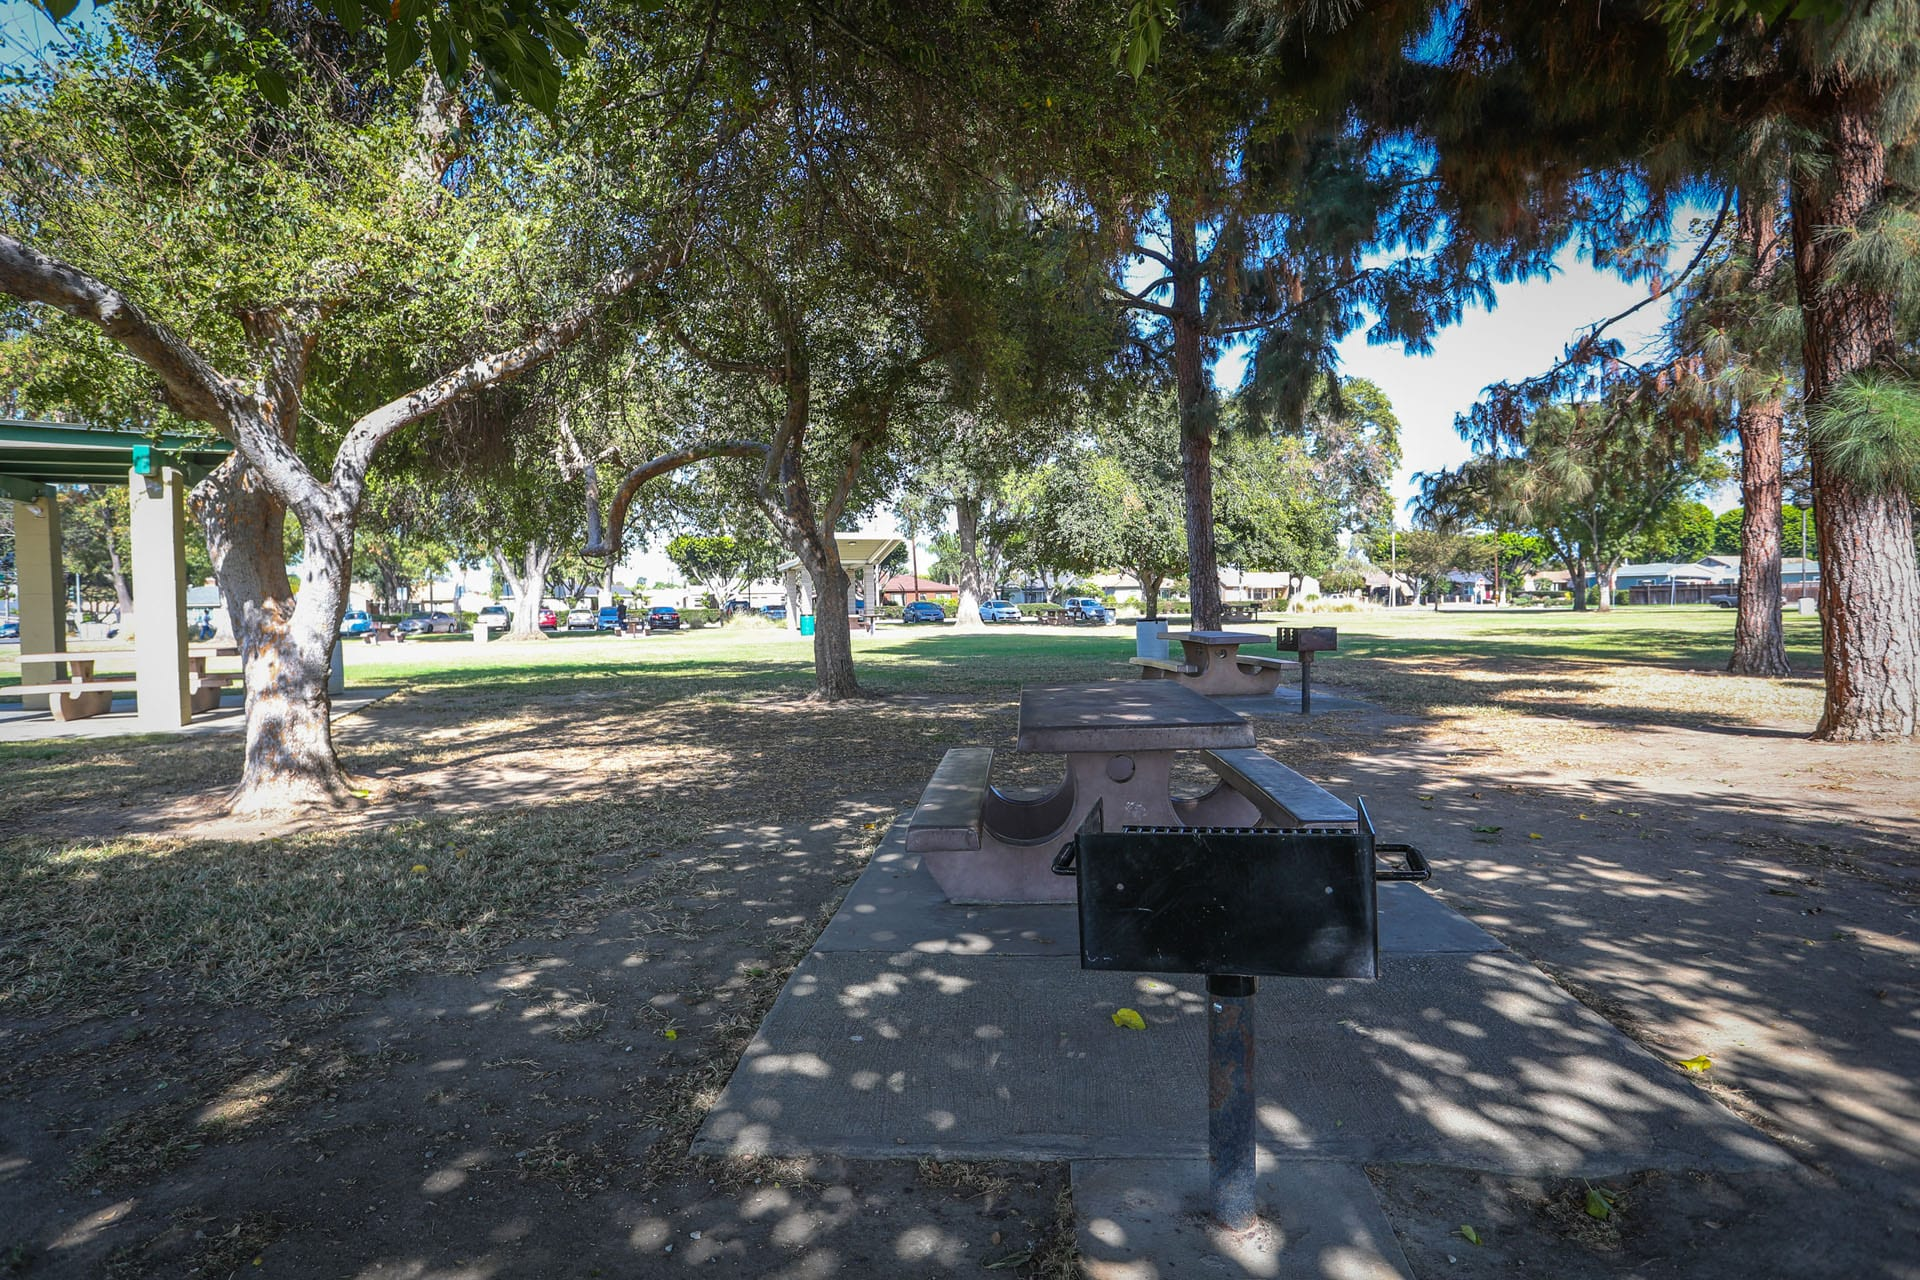 Picnic tables and BBQ grill under the trees